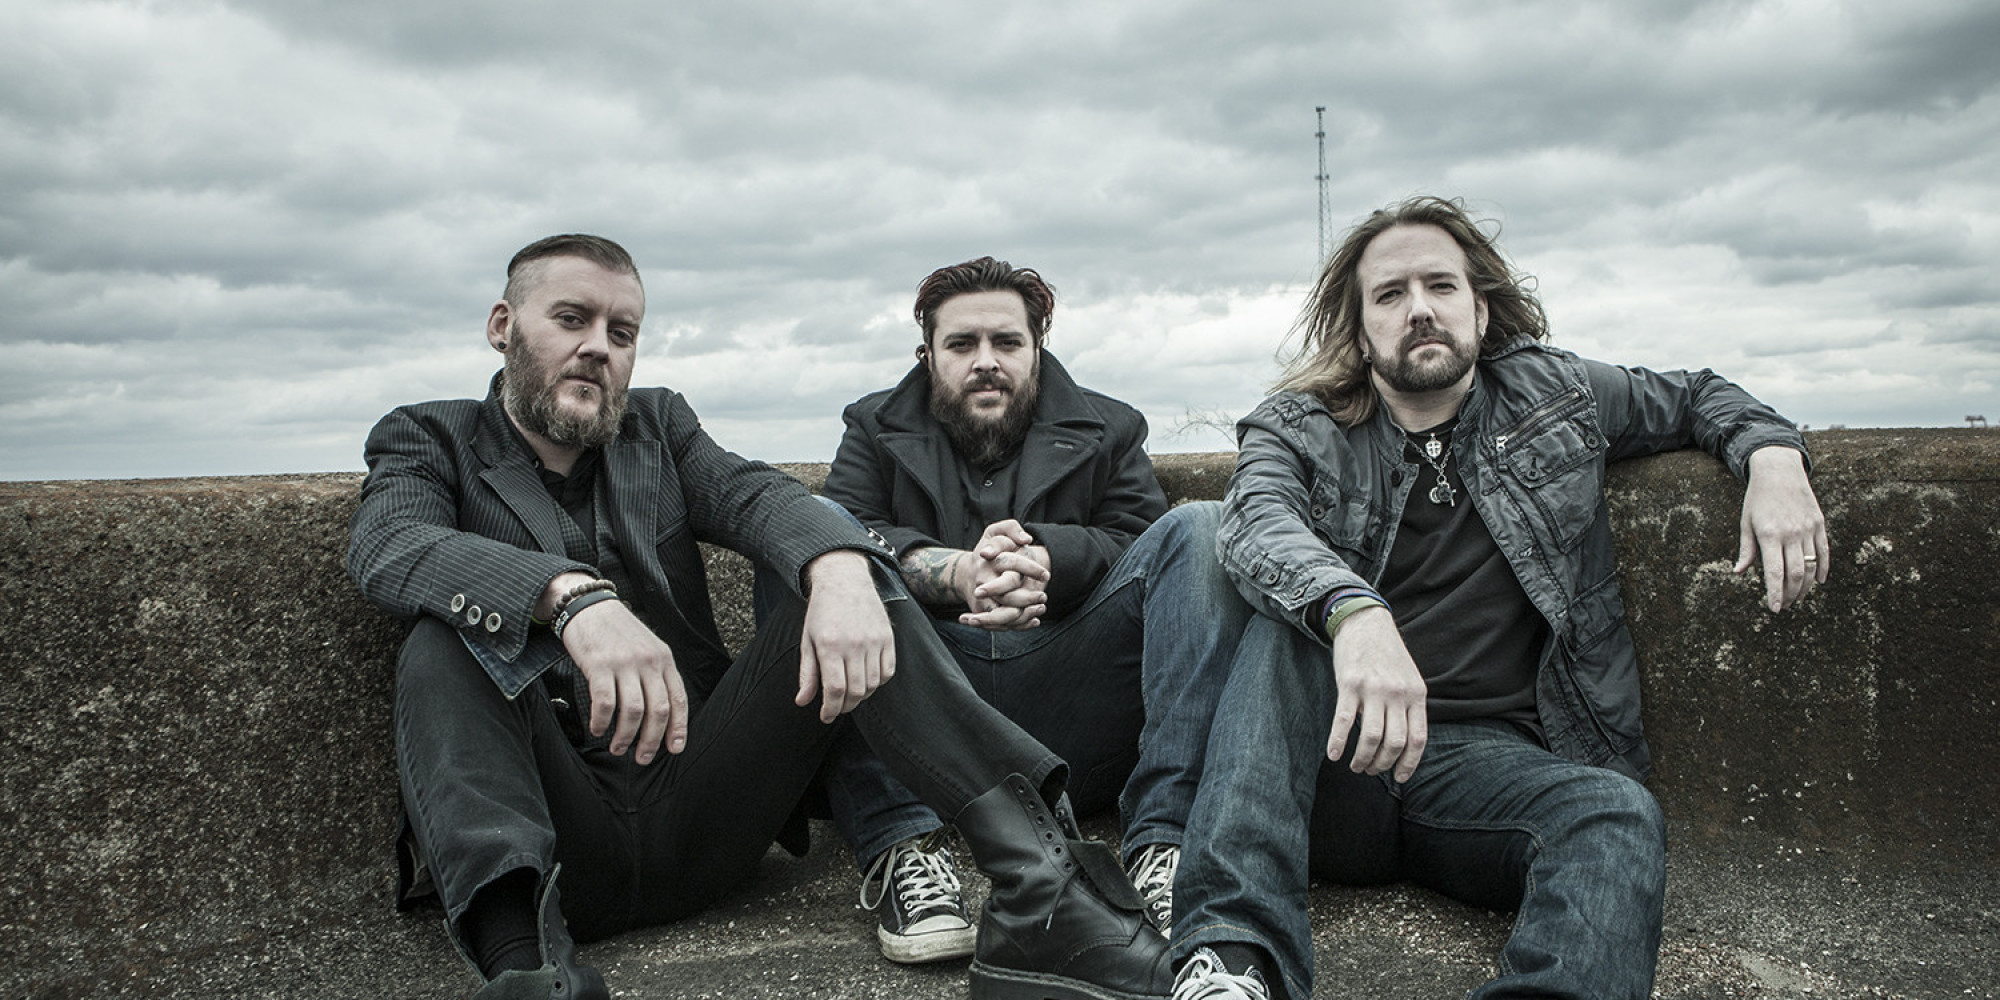 How South African Band Seether Is Shifting The Narrative On Police Brutality